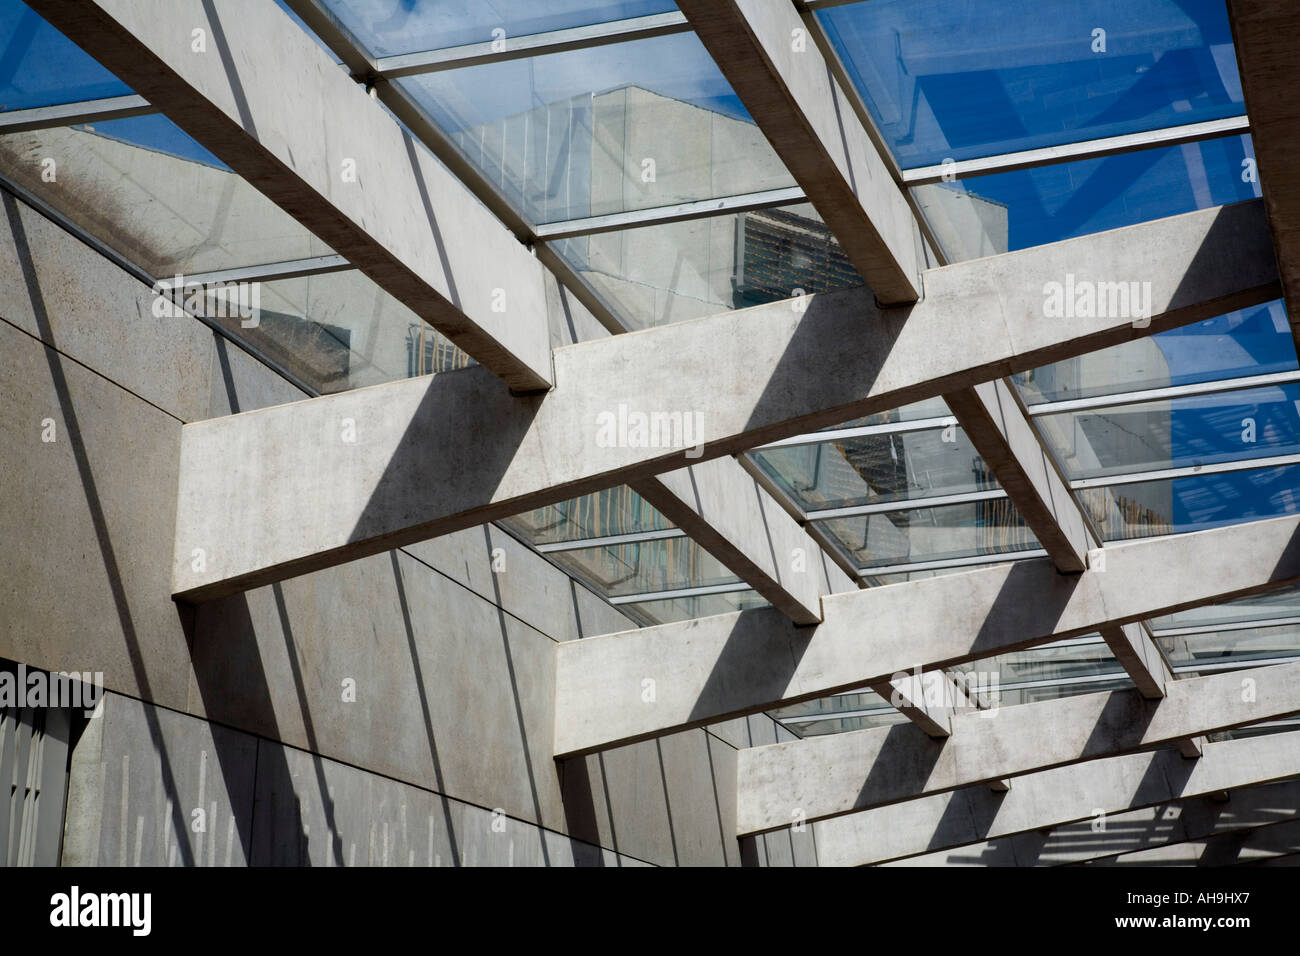 Architectural Detail Glass And Concrete Canopy At The Entrance To Stock Photo Alamy